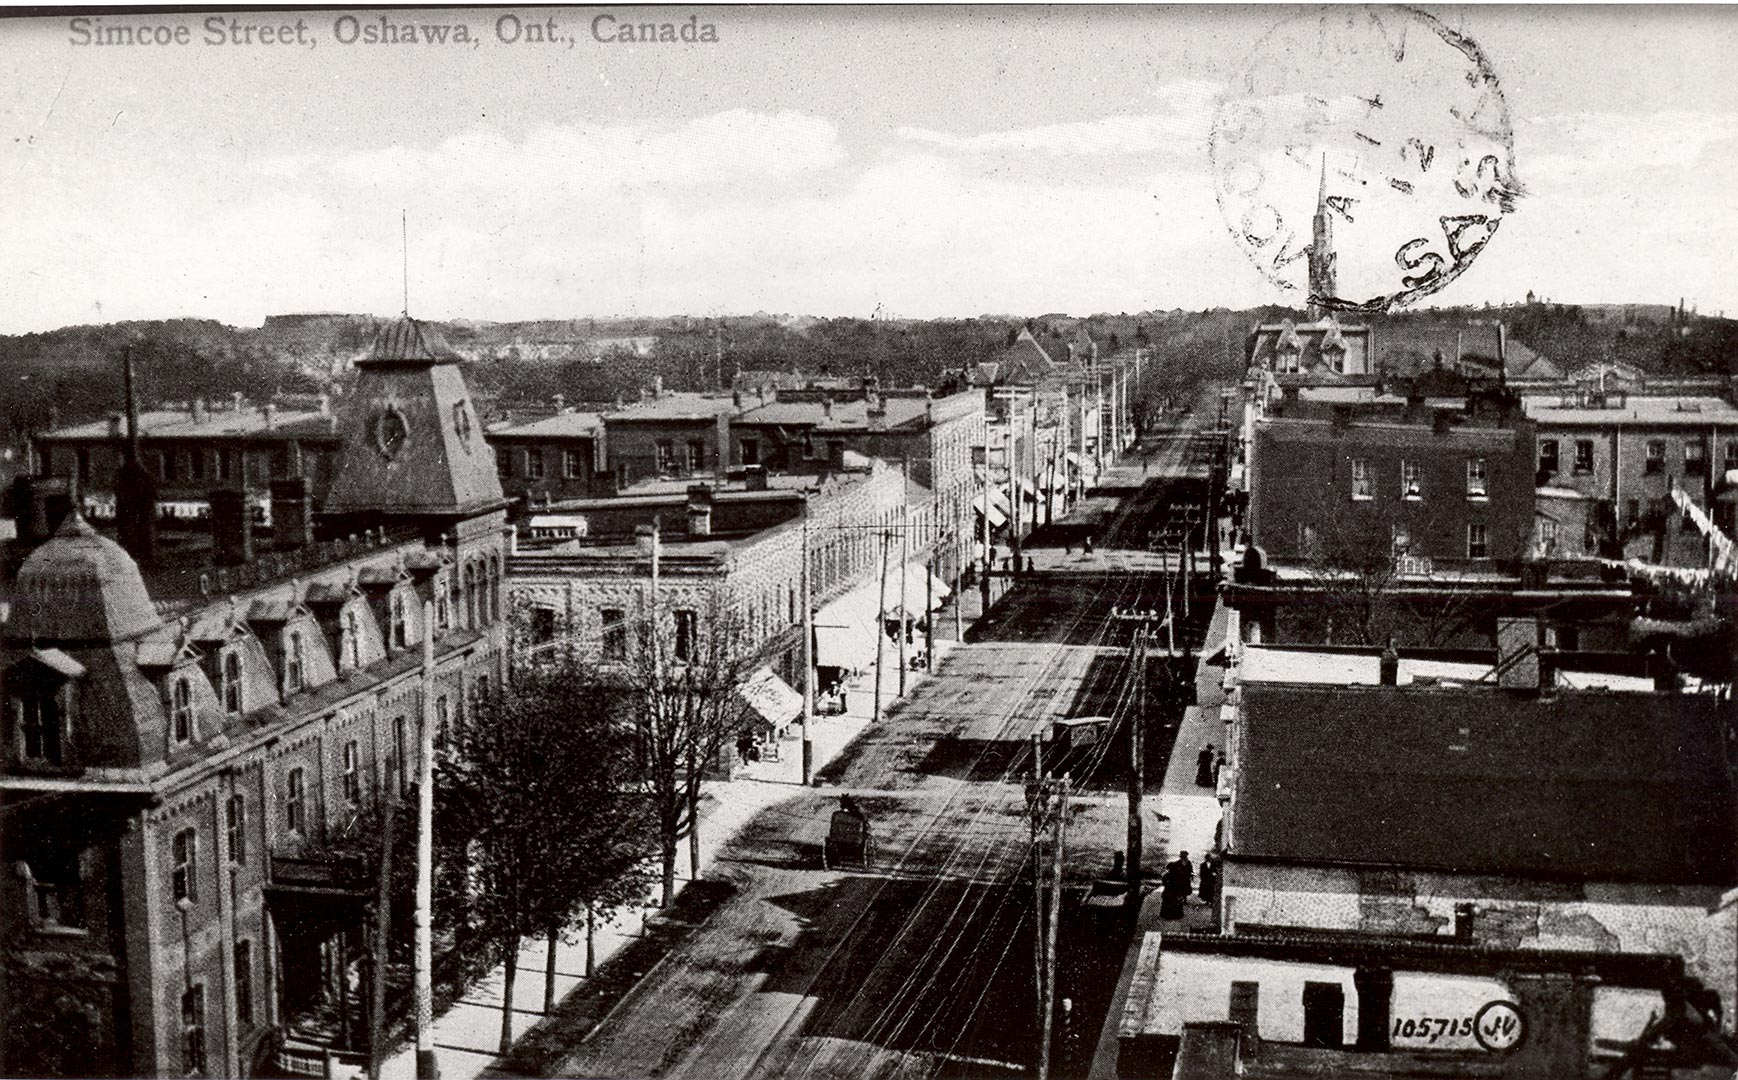 Photograph from The Thomas Bouckley Collection<br>The Robert McLaughlin Gallery, Oshawa